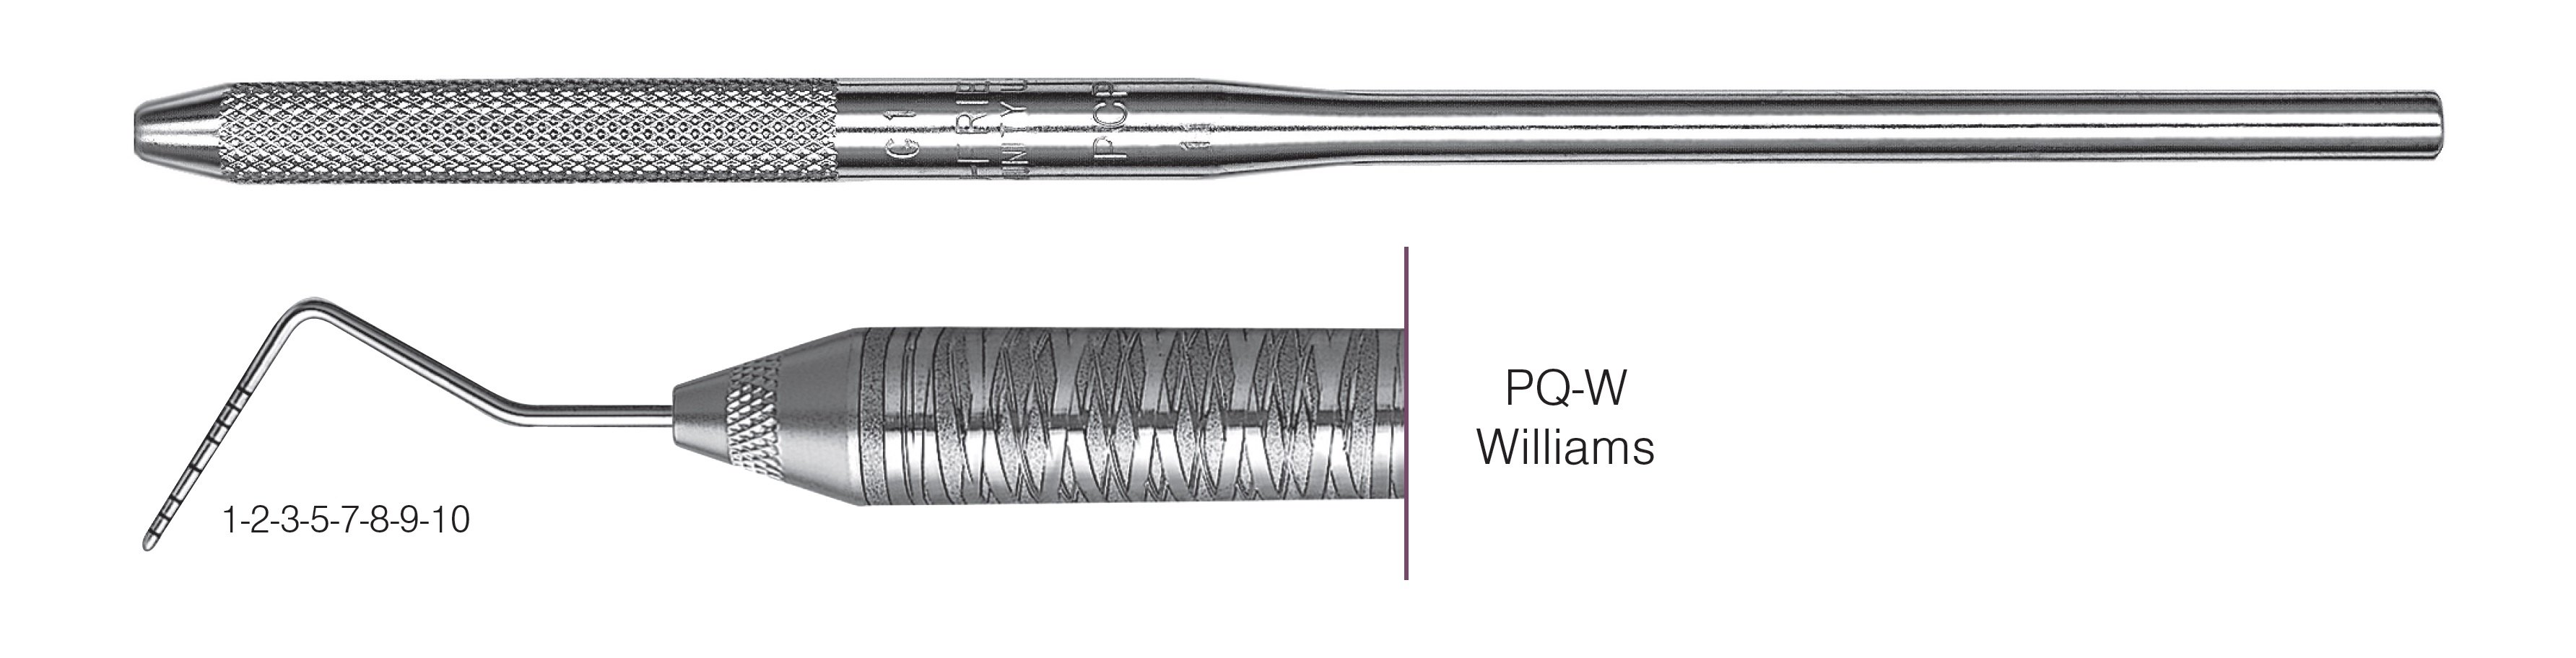 HF-PQW6-30, COLOR-CODED PROBES PQ-W Williams, Black markings, 1-2-3-5-7-8-9-10 mm, Handle round, Single End